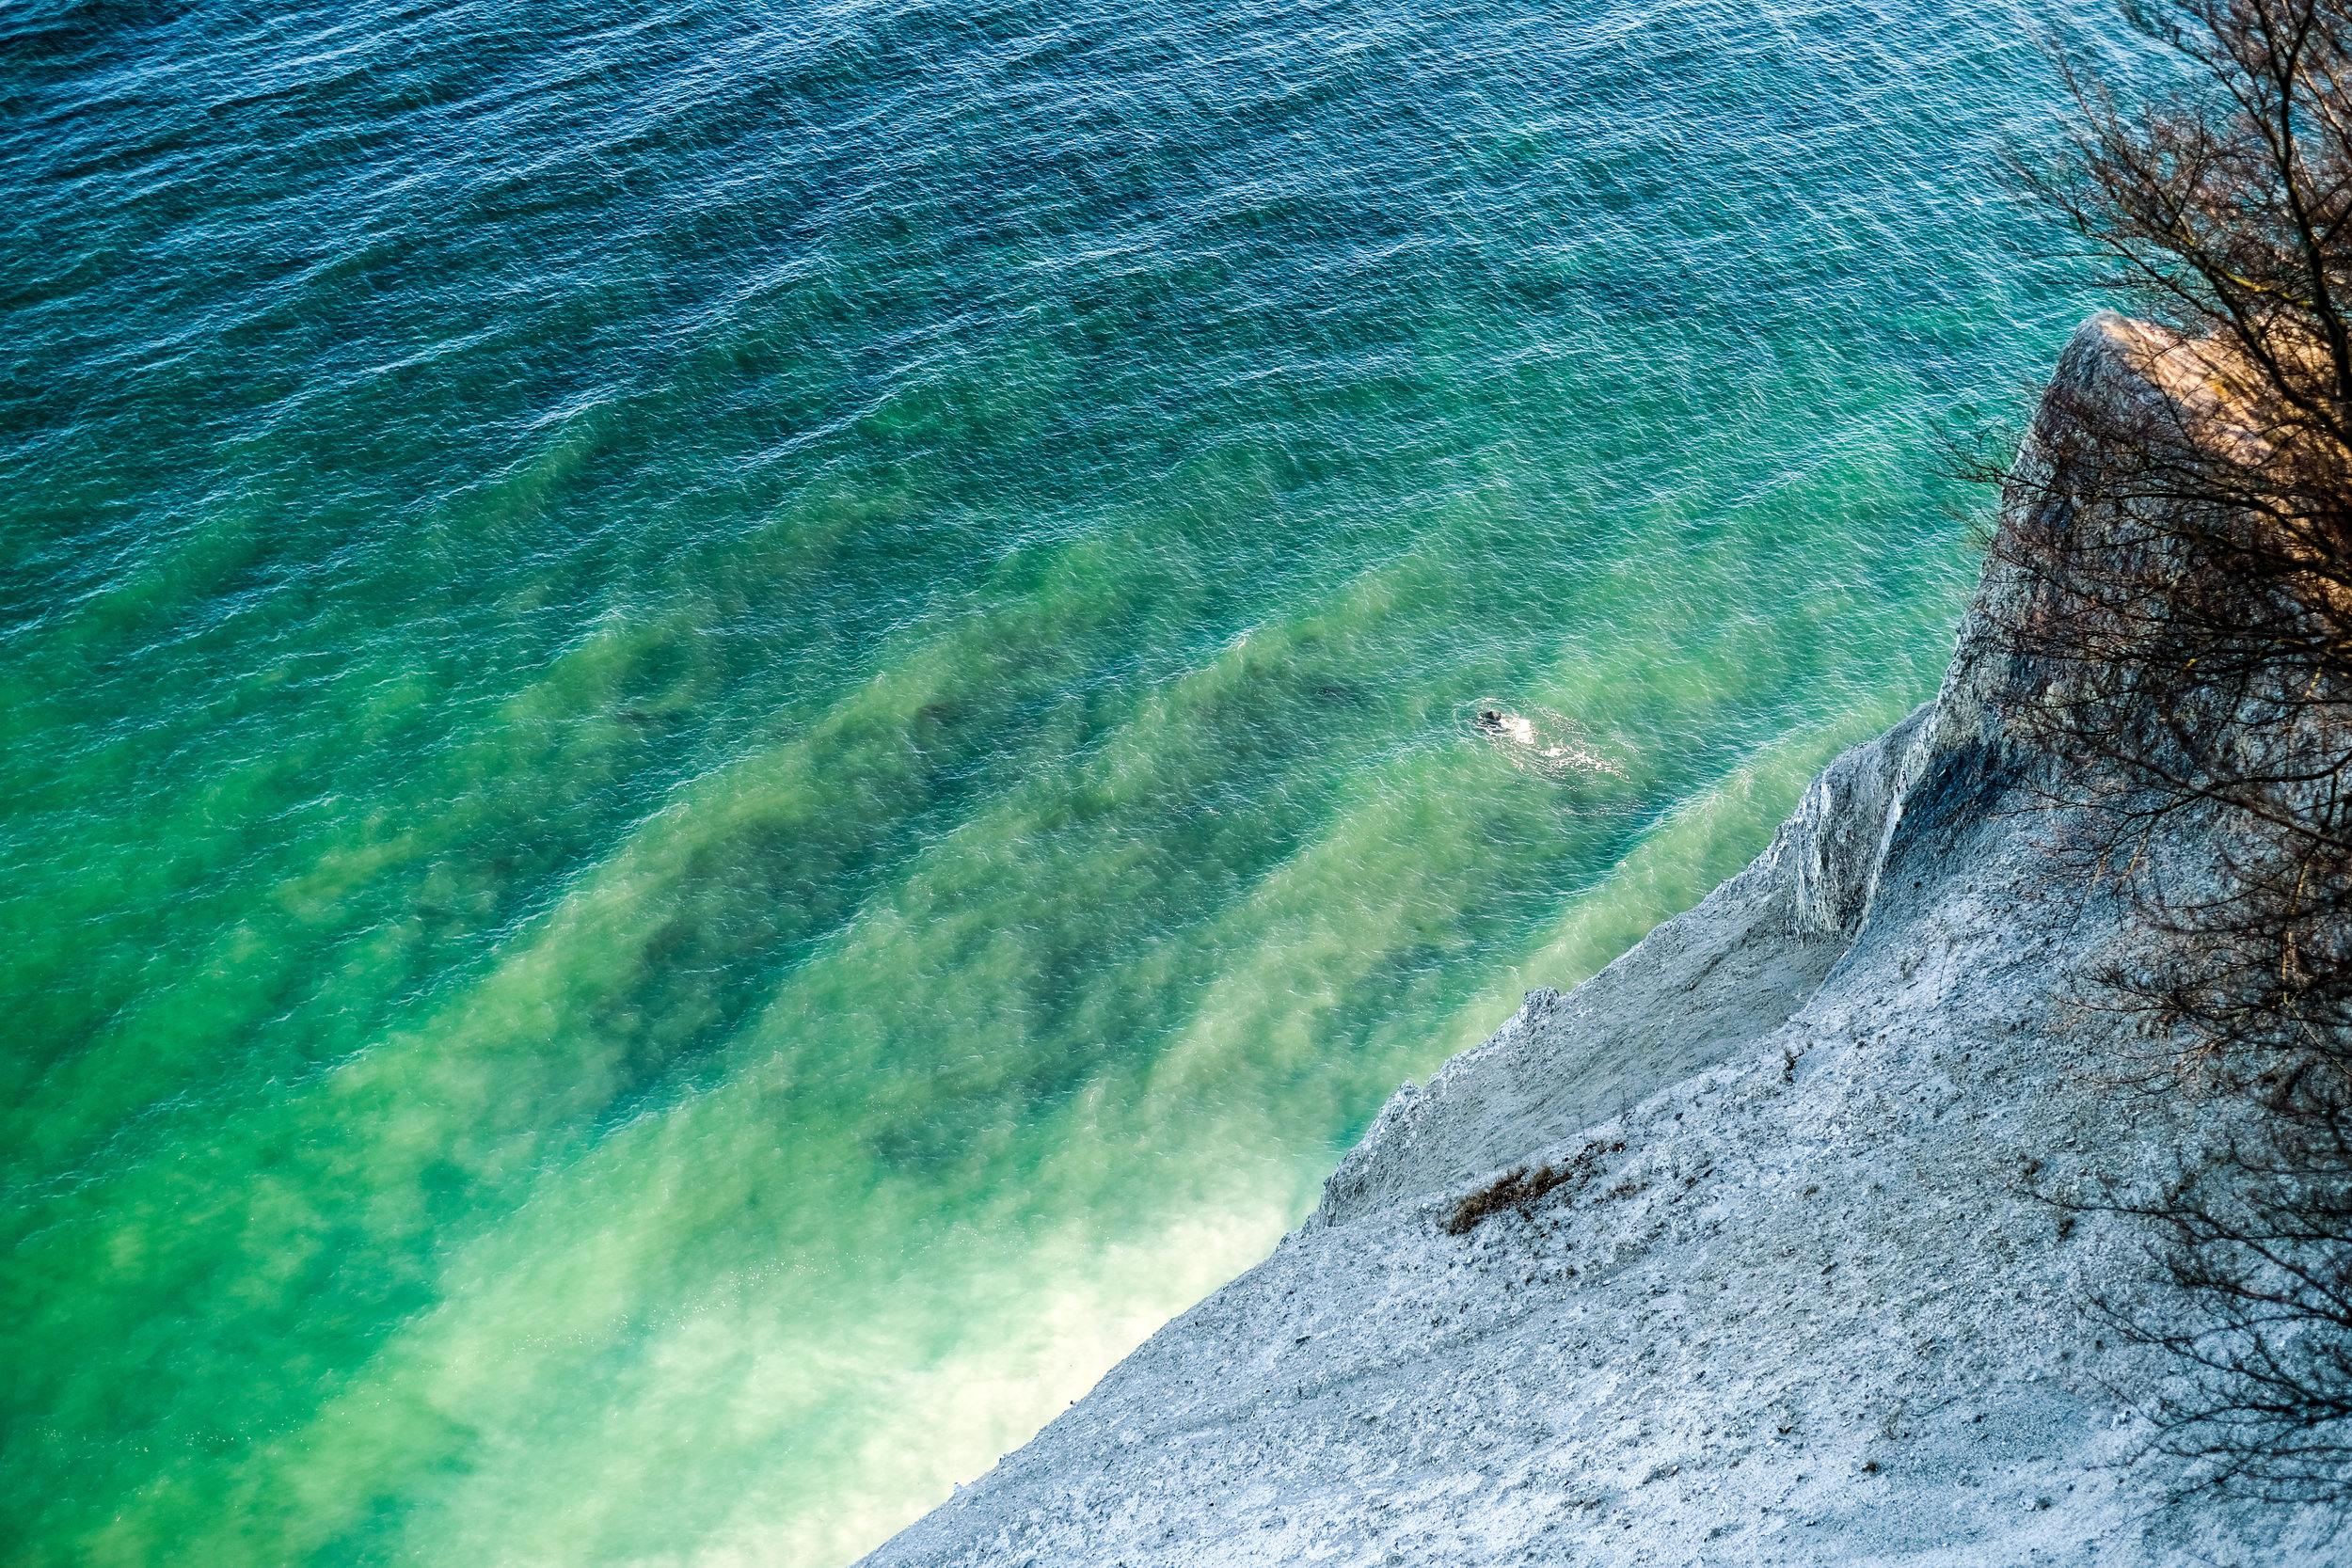 The green water of the Baltic Sea at The Cliffs of Moen, Møns Klint in Denmark